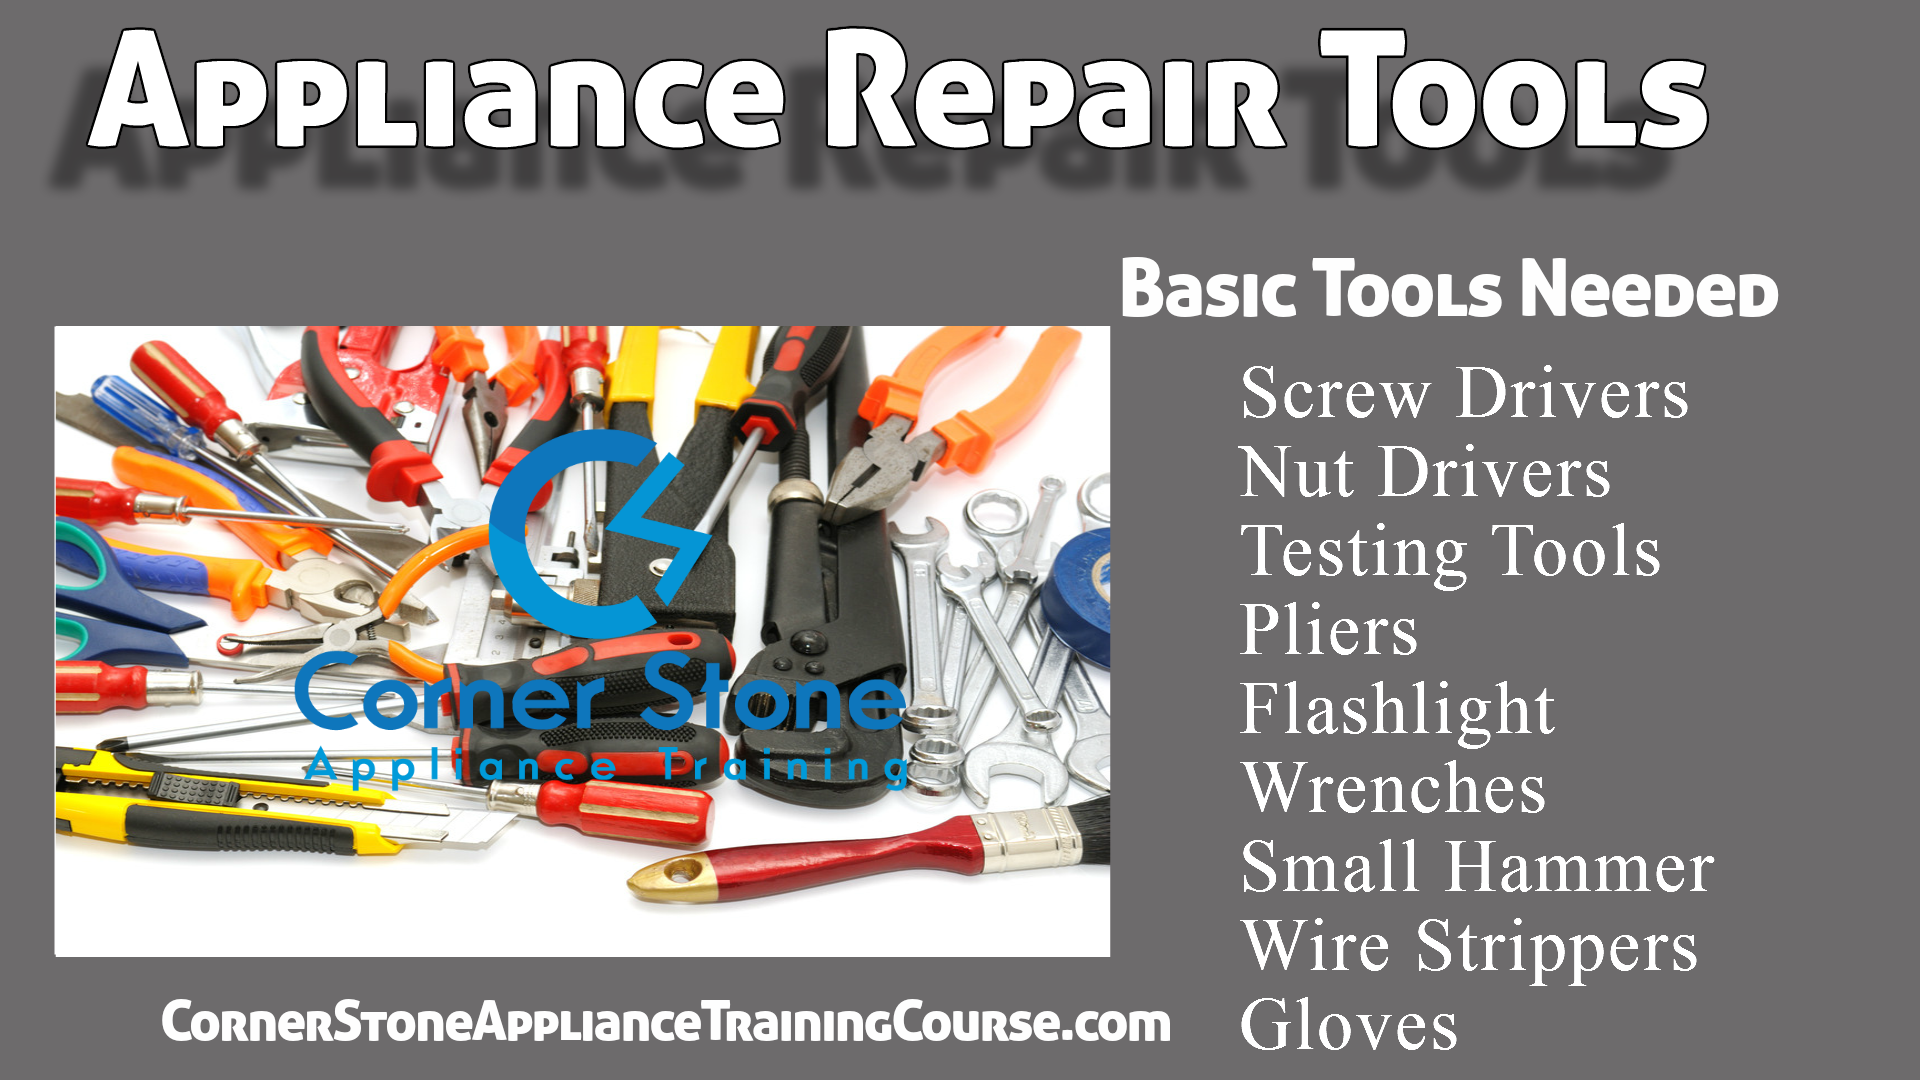 Appliance training - How to Appliance Repair Tools